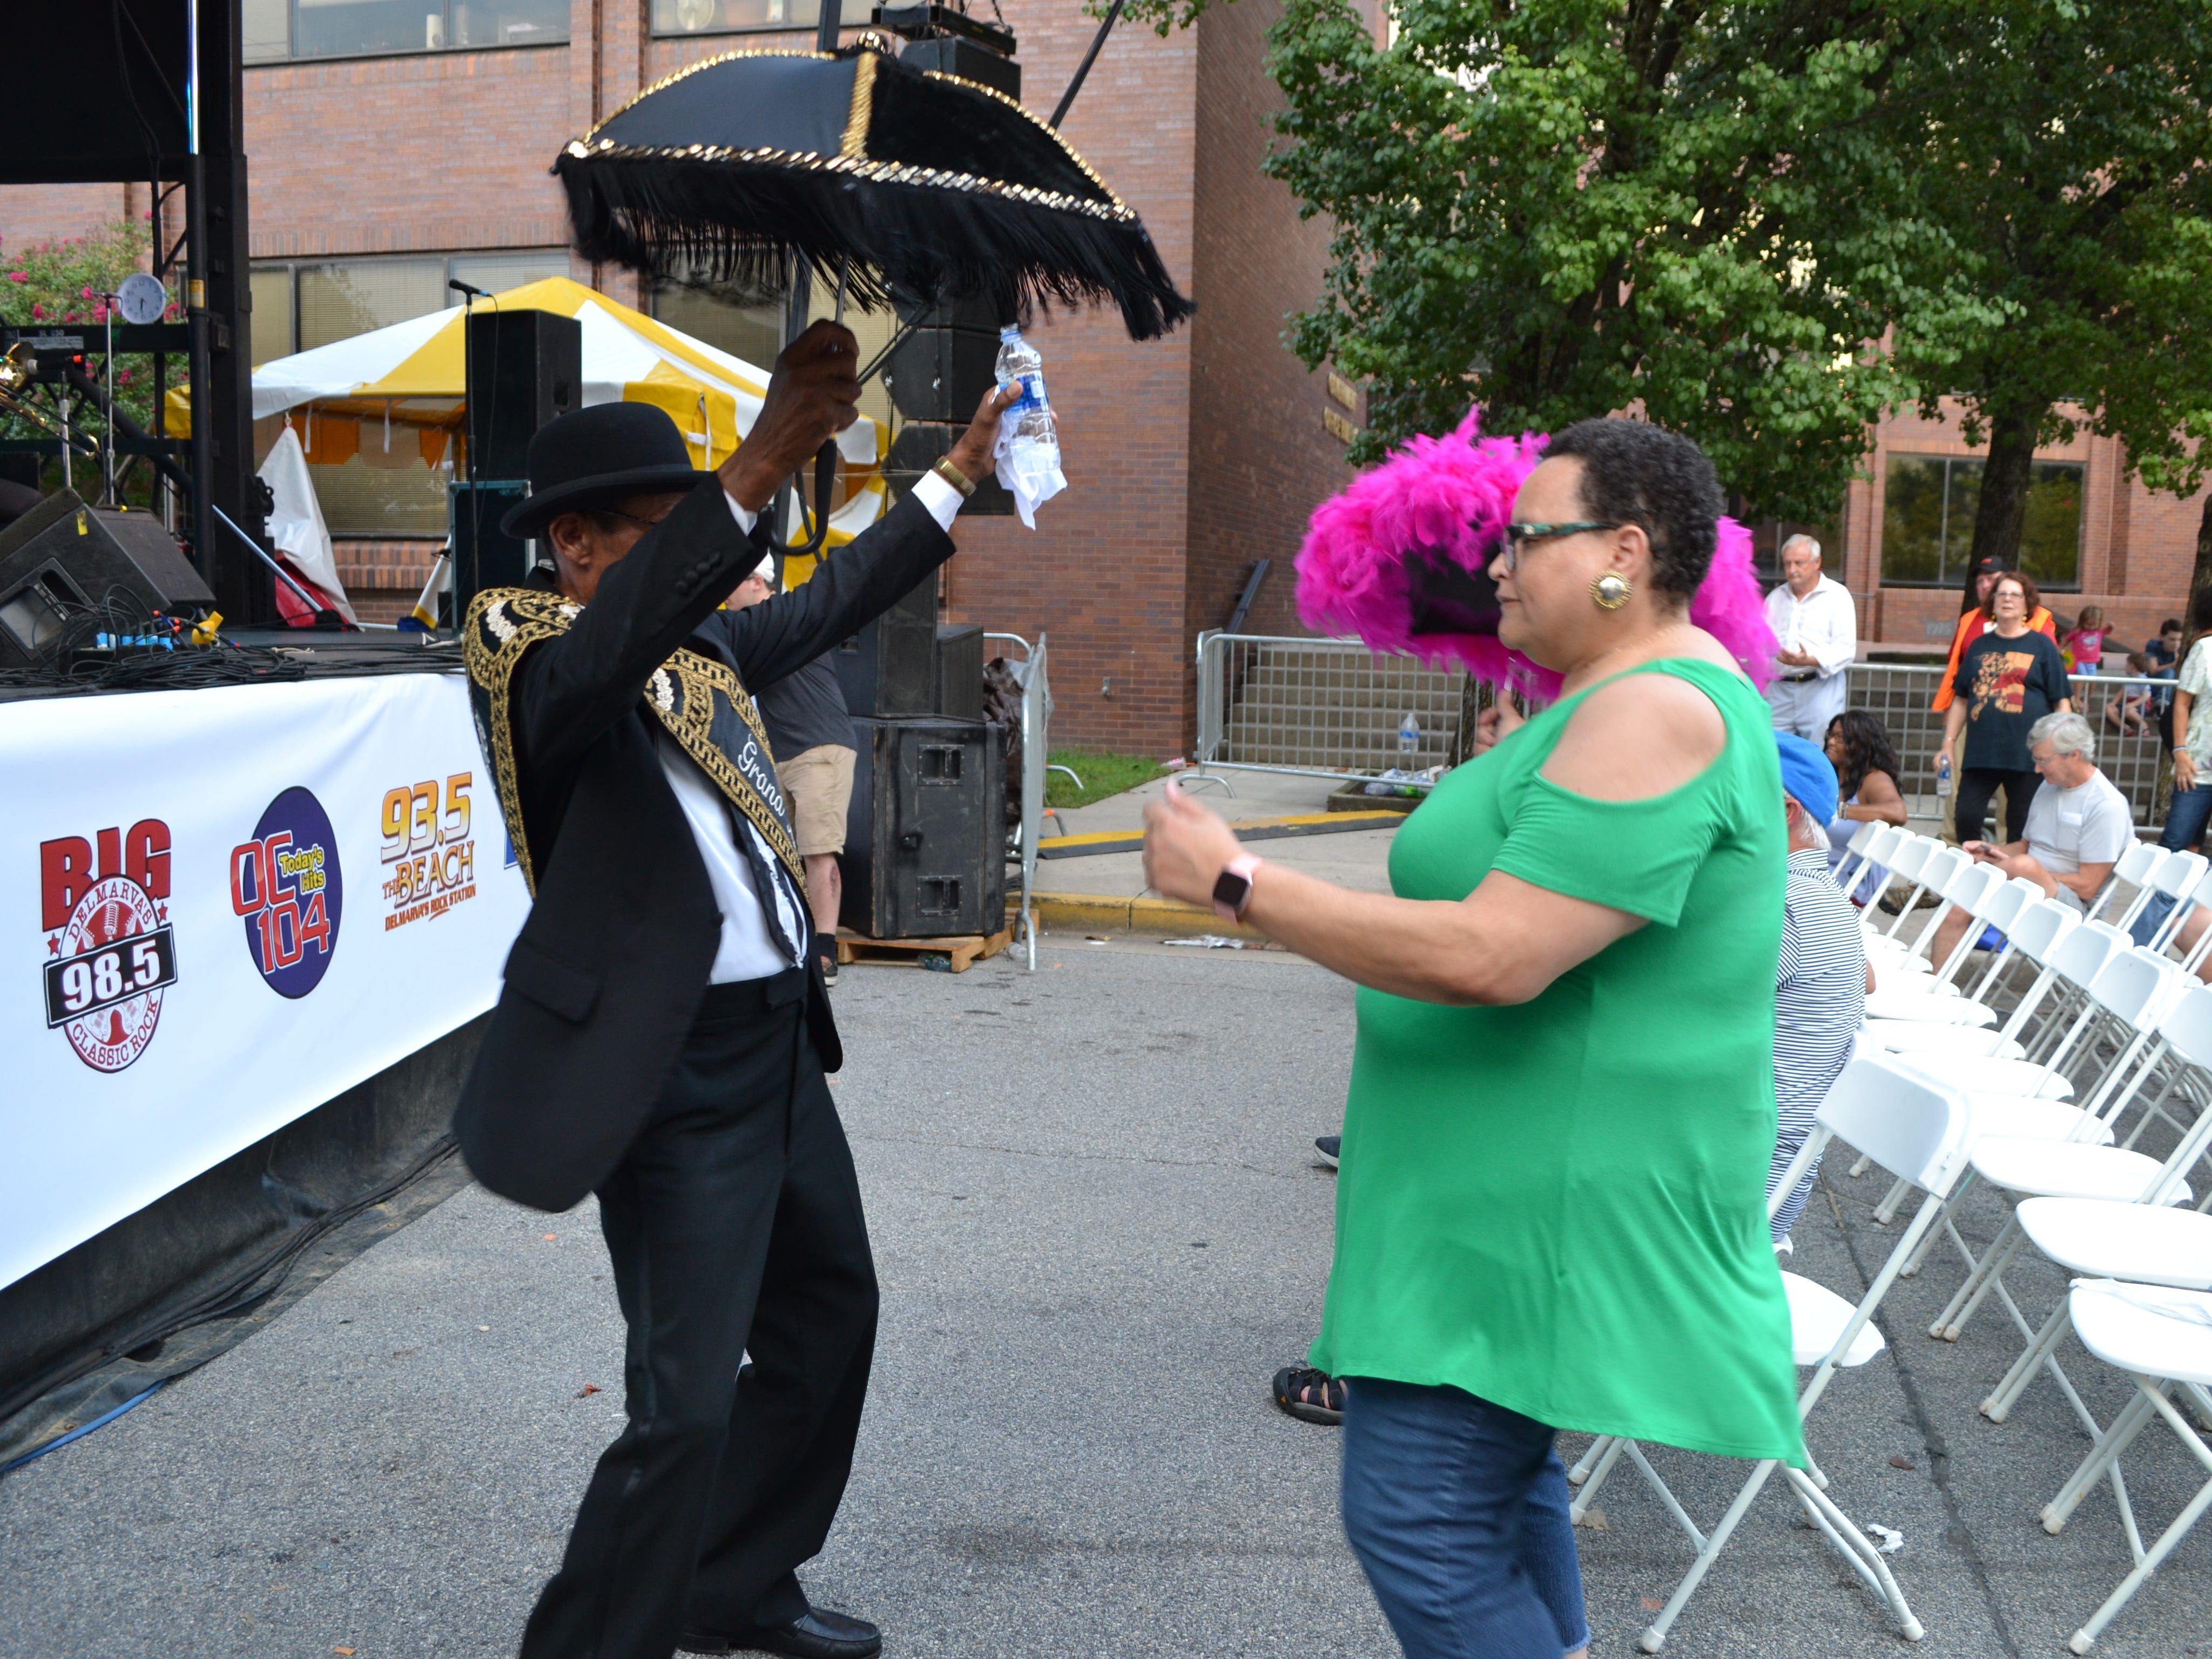 Adrienne Webber of Fruitland dances with Oswald Jones, the grand marshal of the Treme Brass Band, at the National Folk Festival in Salisbury on Friday night.